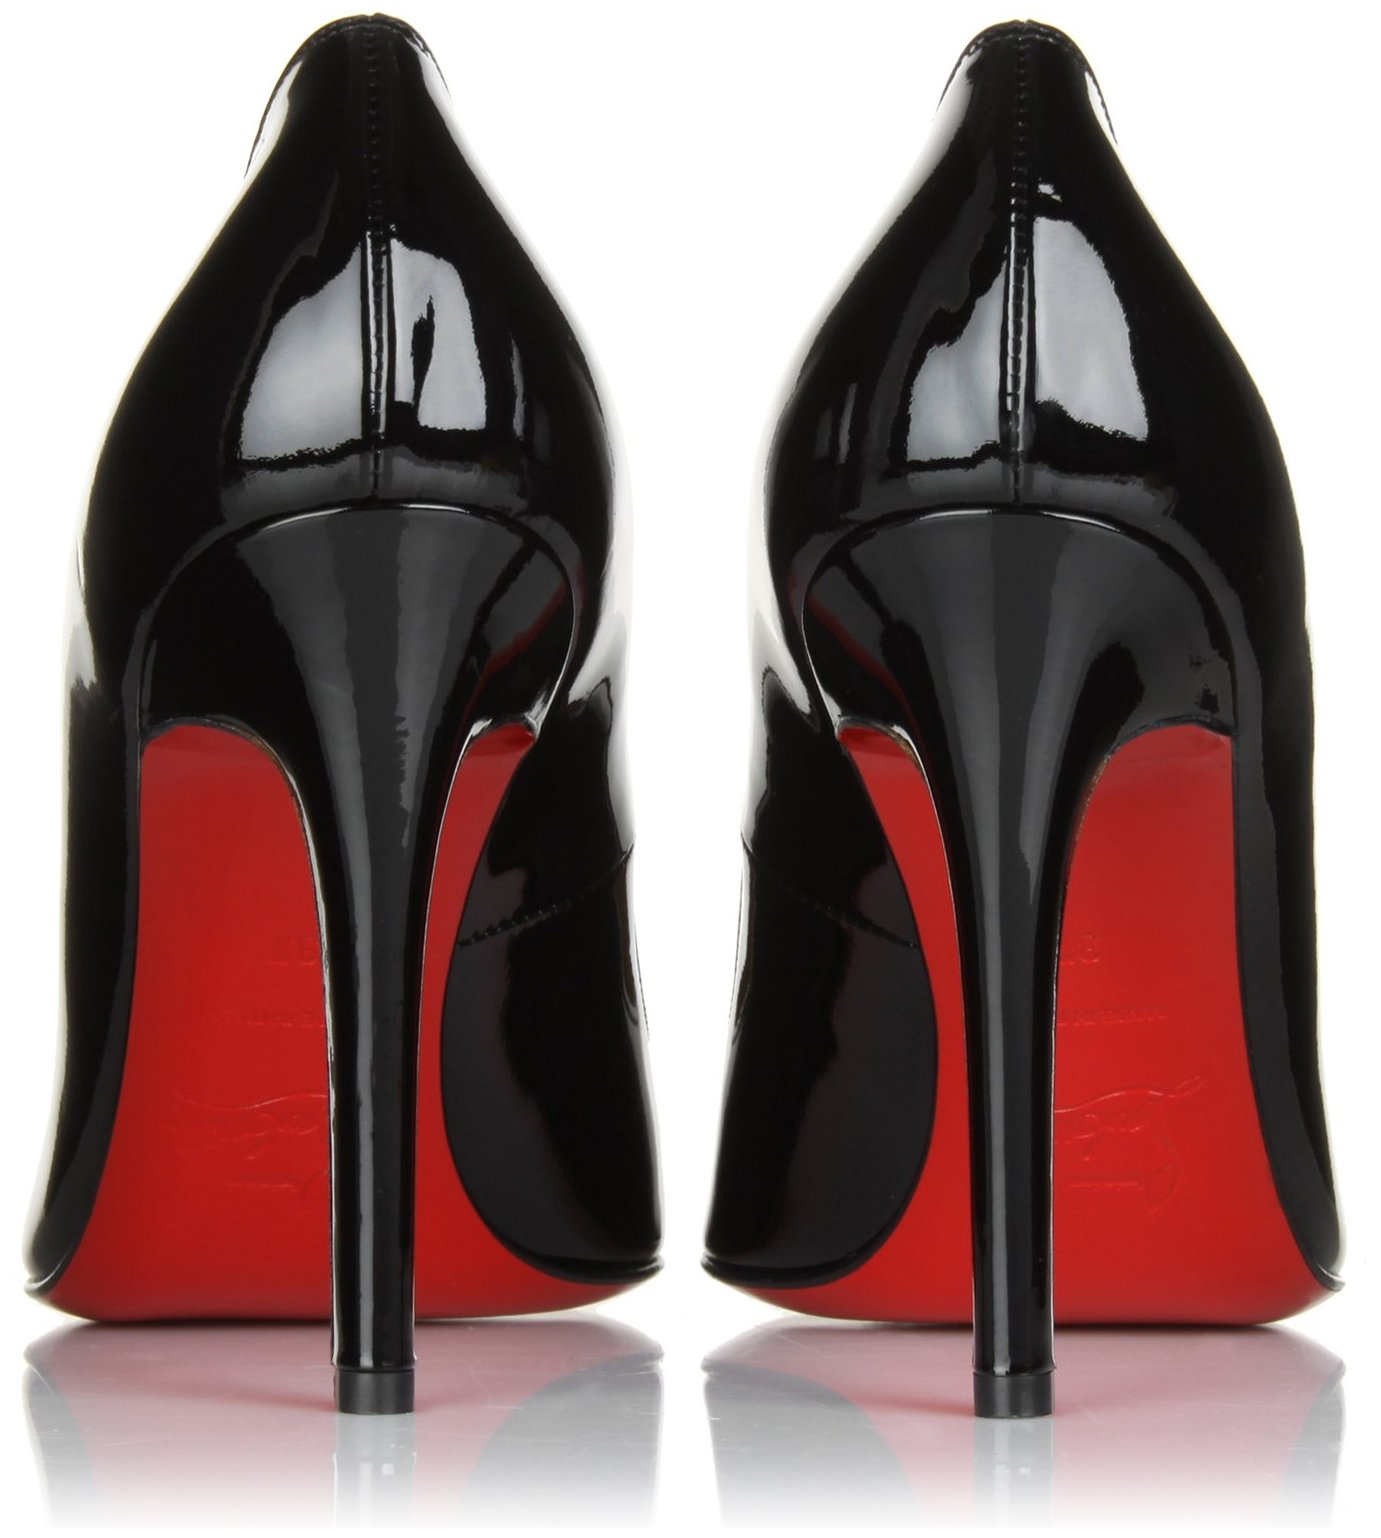 Itsnina Ox How To Spot Fake Christian Louboutin Shoes